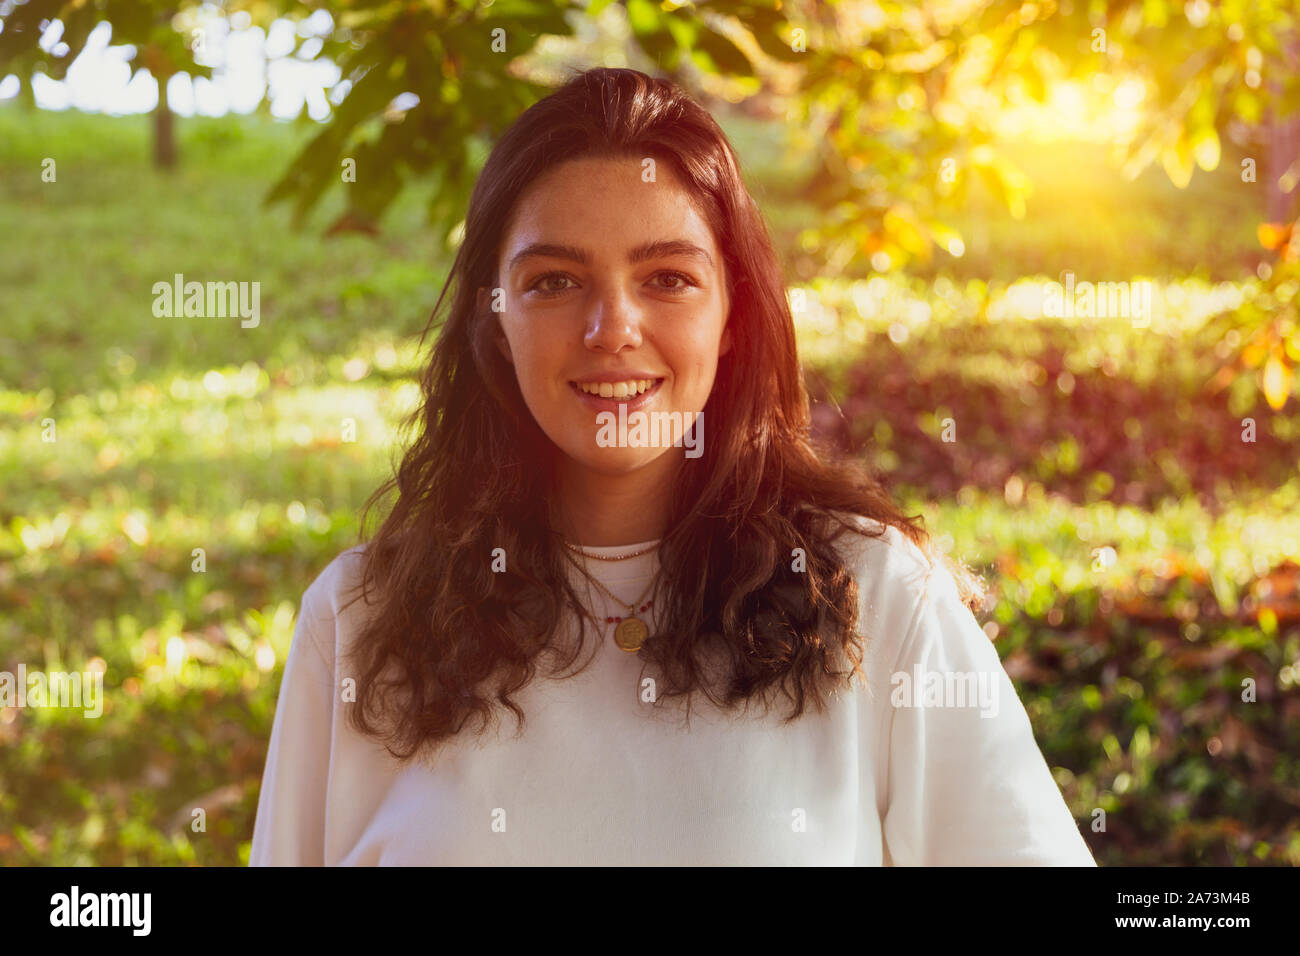 Young woman smiling in nature Stock Photo